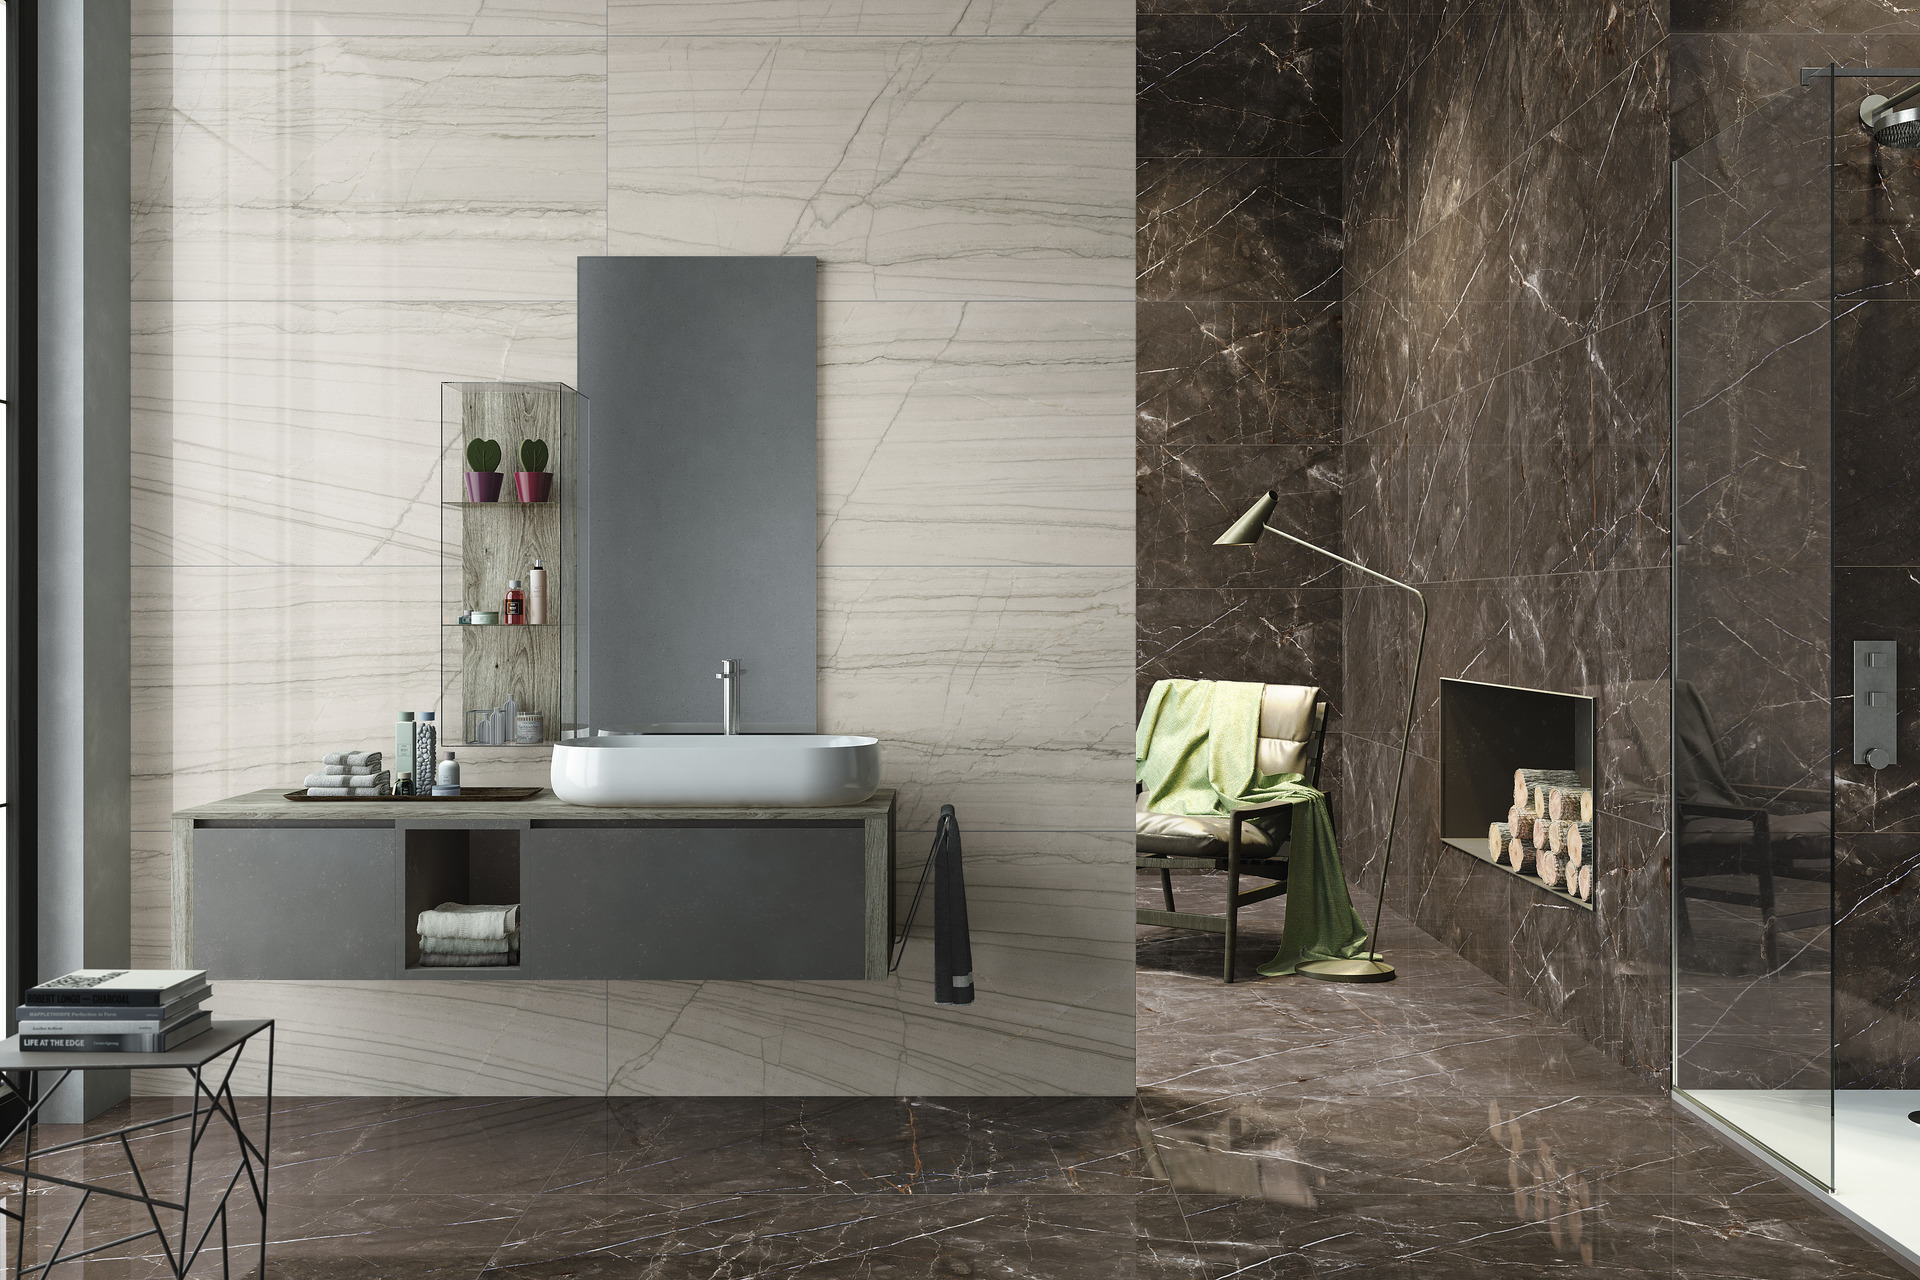 Marble Effect Porcelain Tiles - Marmi 3.0